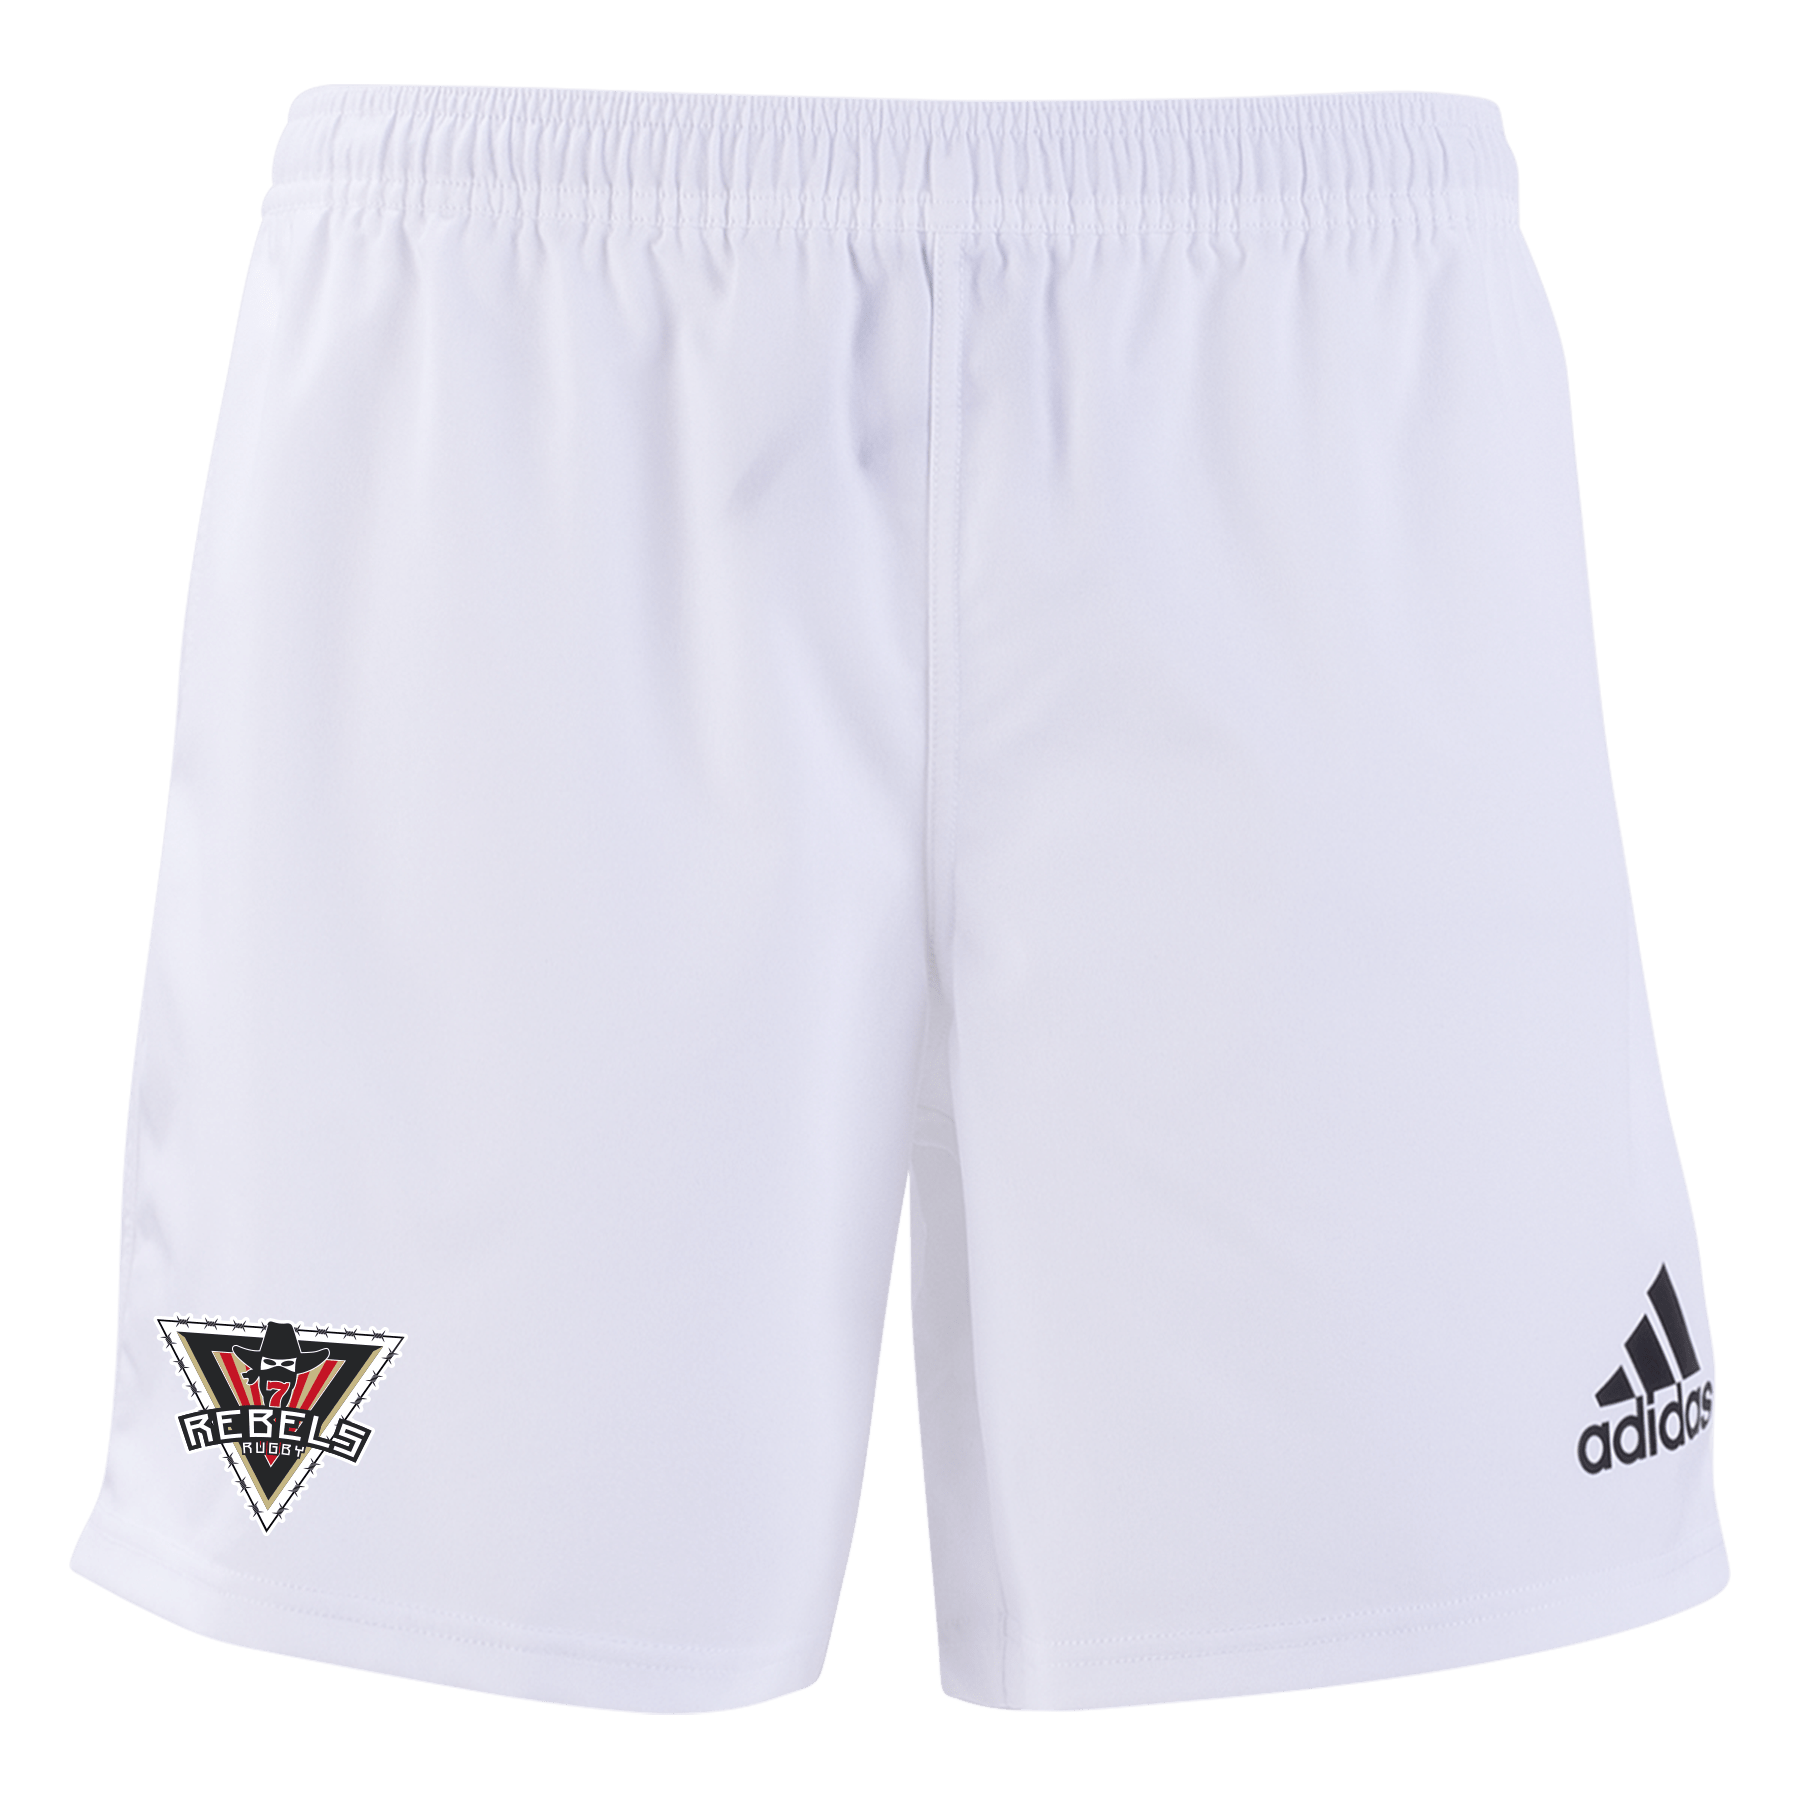 Rebels Rugby Academy adidas 19 White/Black 3 Stripe Shorts